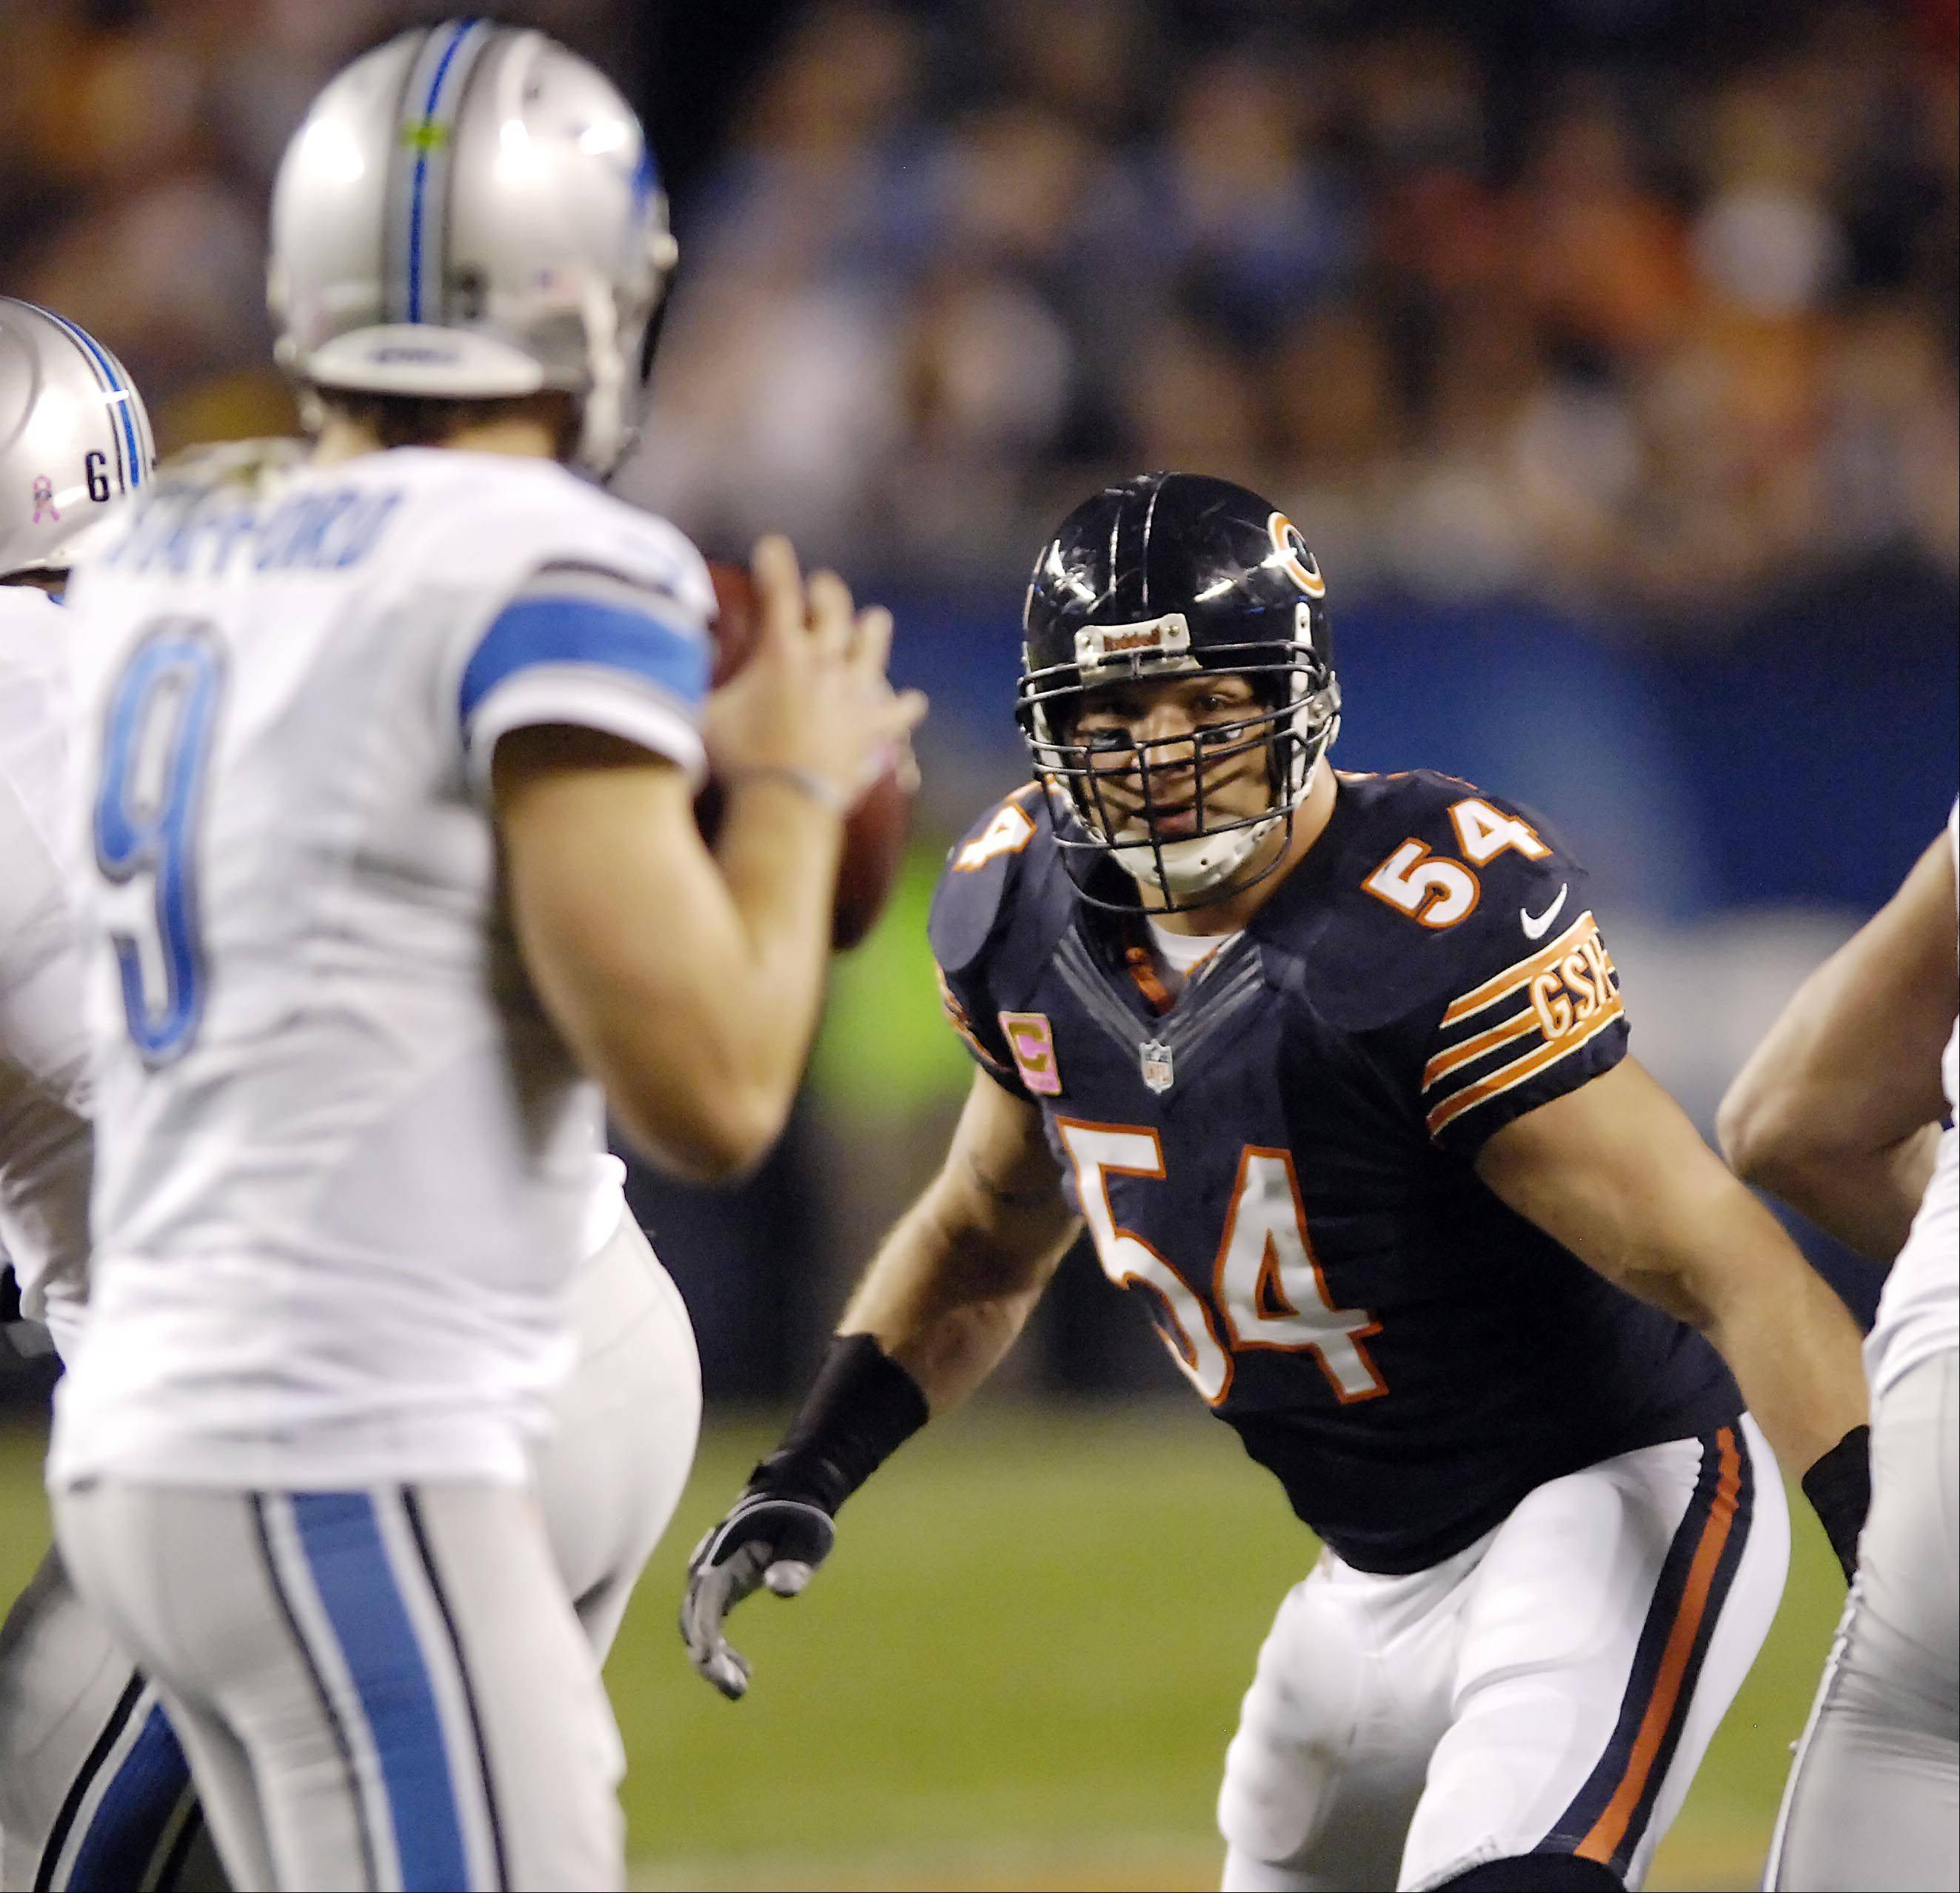 Chicago Bears middle linebacker Brian Urlacher watches Detroit Lions quarterback Matthew Stafford in the first half.